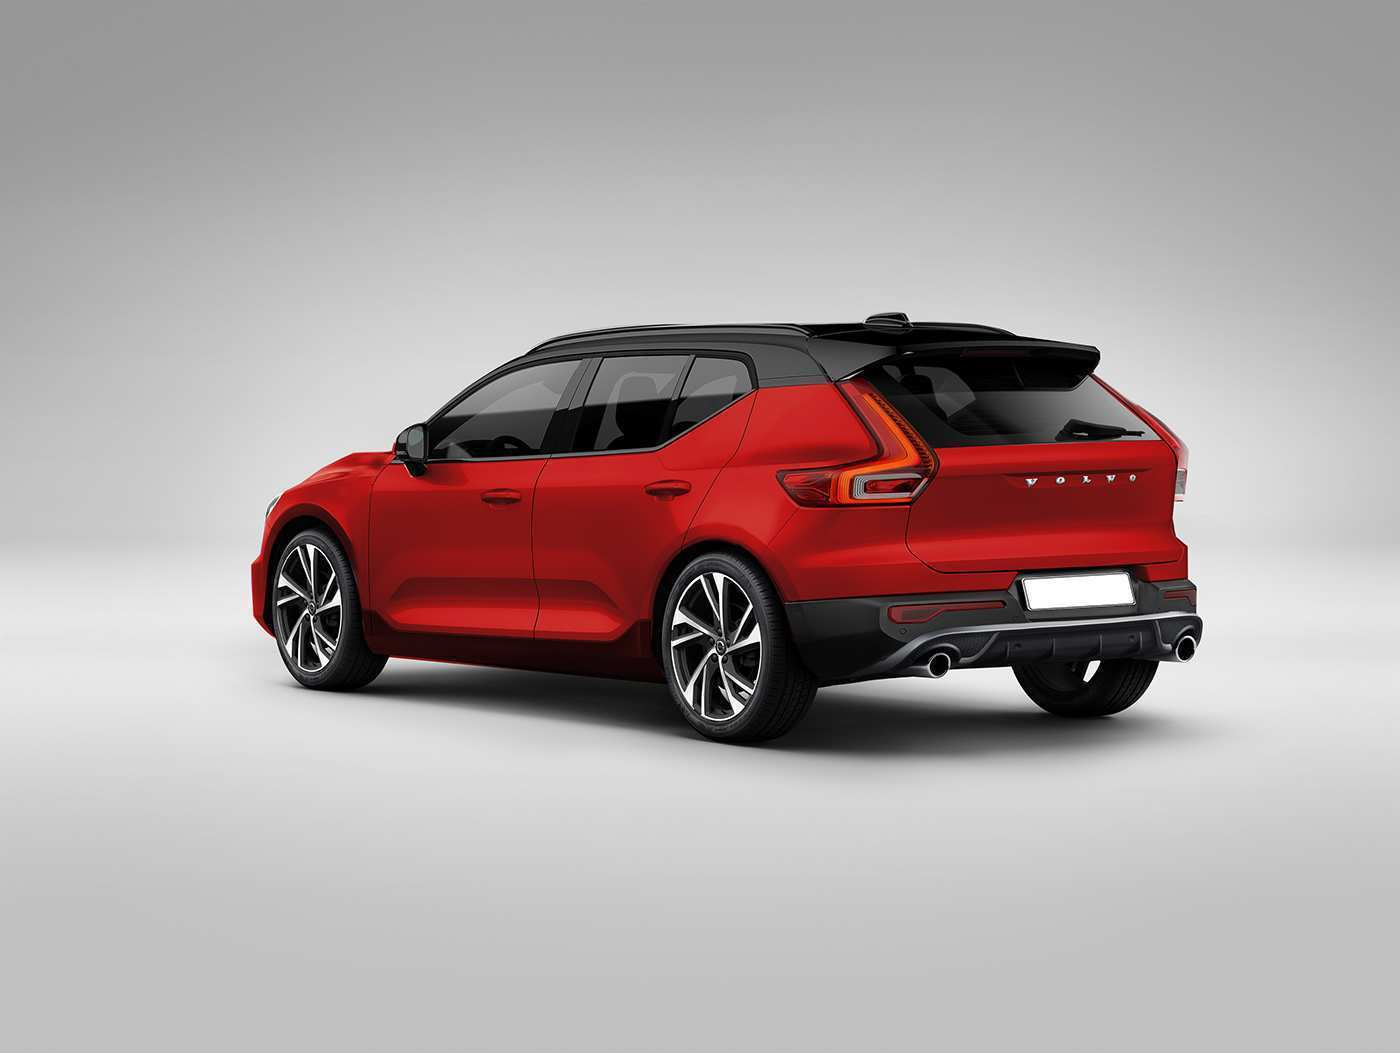 98 Concept of Volvo V40 2020 Exterior Date Specs and Review for Volvo V40 2020 Exterior Date